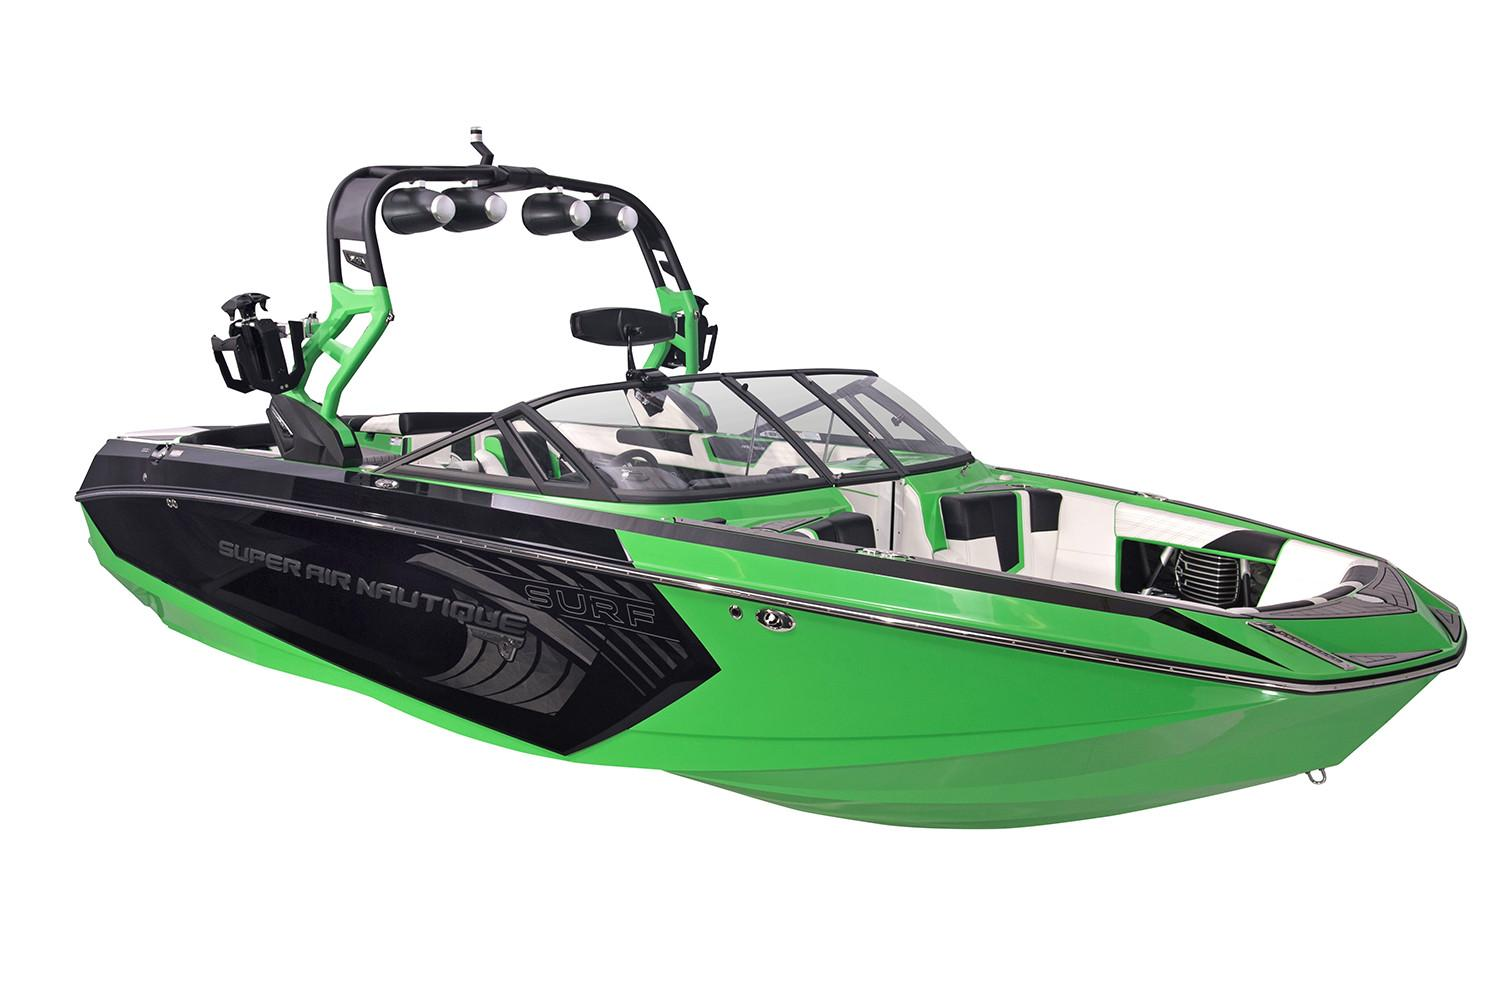 2019 Nautique Super Air Nautique G25 in Speculator, New York - Photo 11